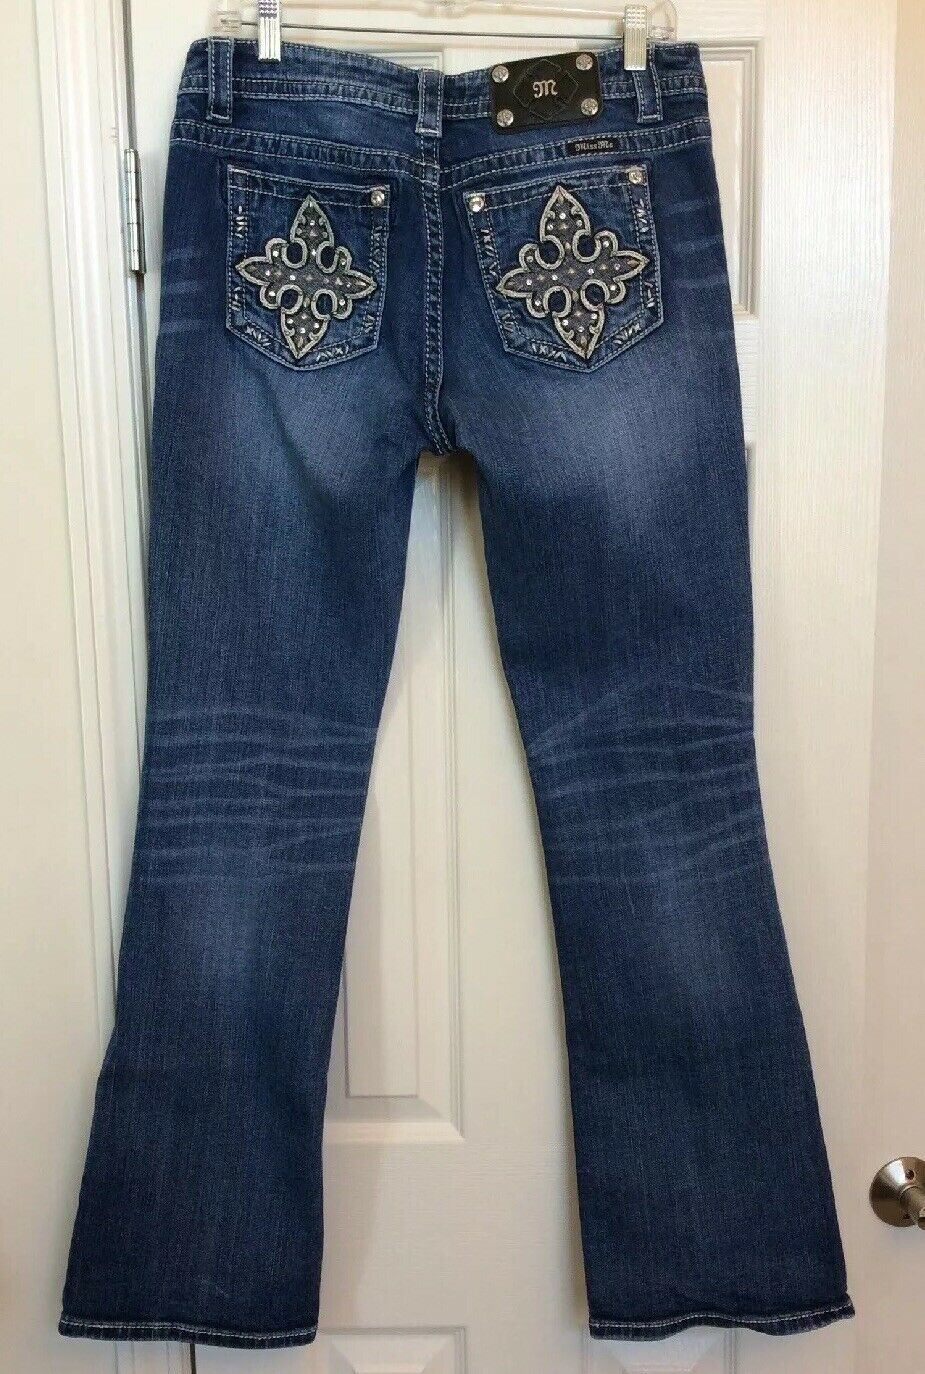 Miss Me Signature Boot Cut Stretch Jeans Studs And Rhinestones JY7535B2 Size 30